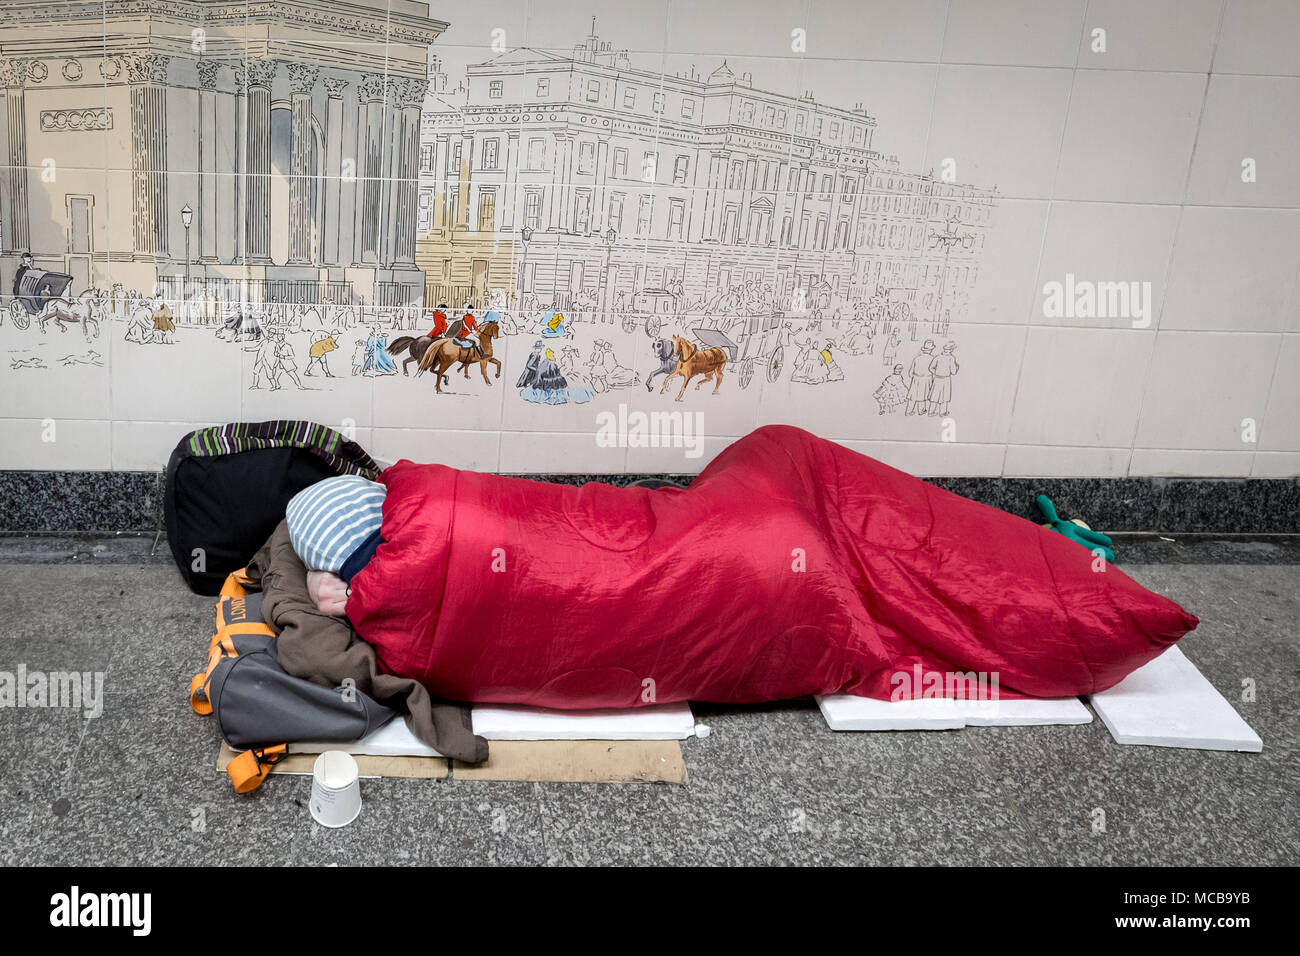 london-uk-15th-april-2017-a-rough-sleeper-during-the-day-in-hyde-park-underpass-the-number-of-people-sleeping-rough-in-england-has-risen-for-the-sixth-year-in-a-row-according-to-the-latest-official-figures-guy-corbishleyalamy-live-news-MCB9YB.jpg?profile=RESIZE_400x